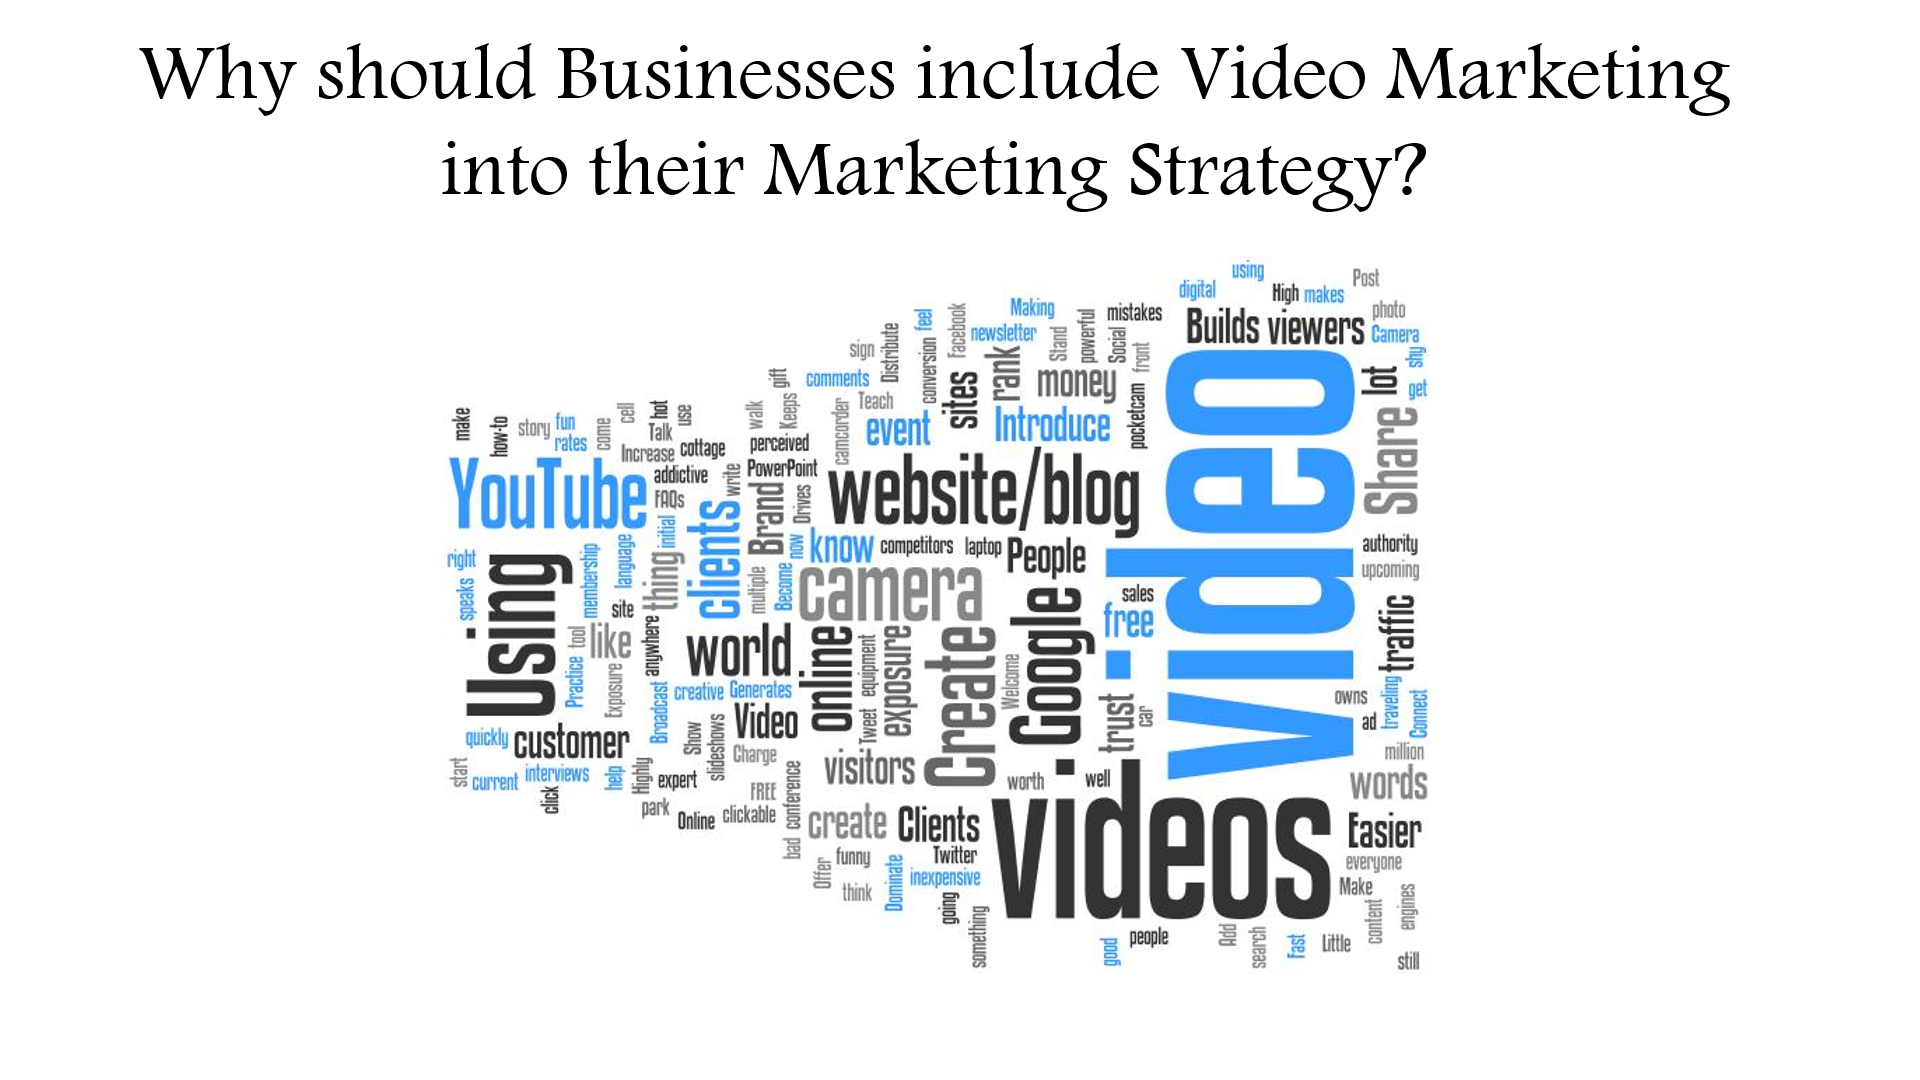 Why should businesses include Video Marketing into their Marketing Strategy?